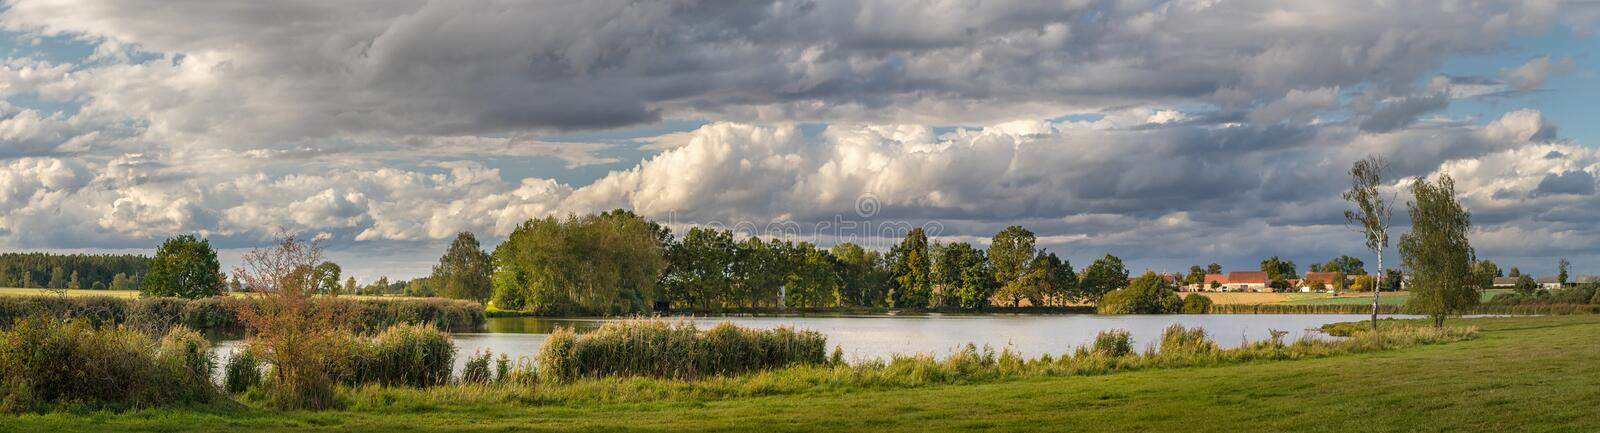 Picturesque country landscape with pond, meadow and trees royalty free stock photo